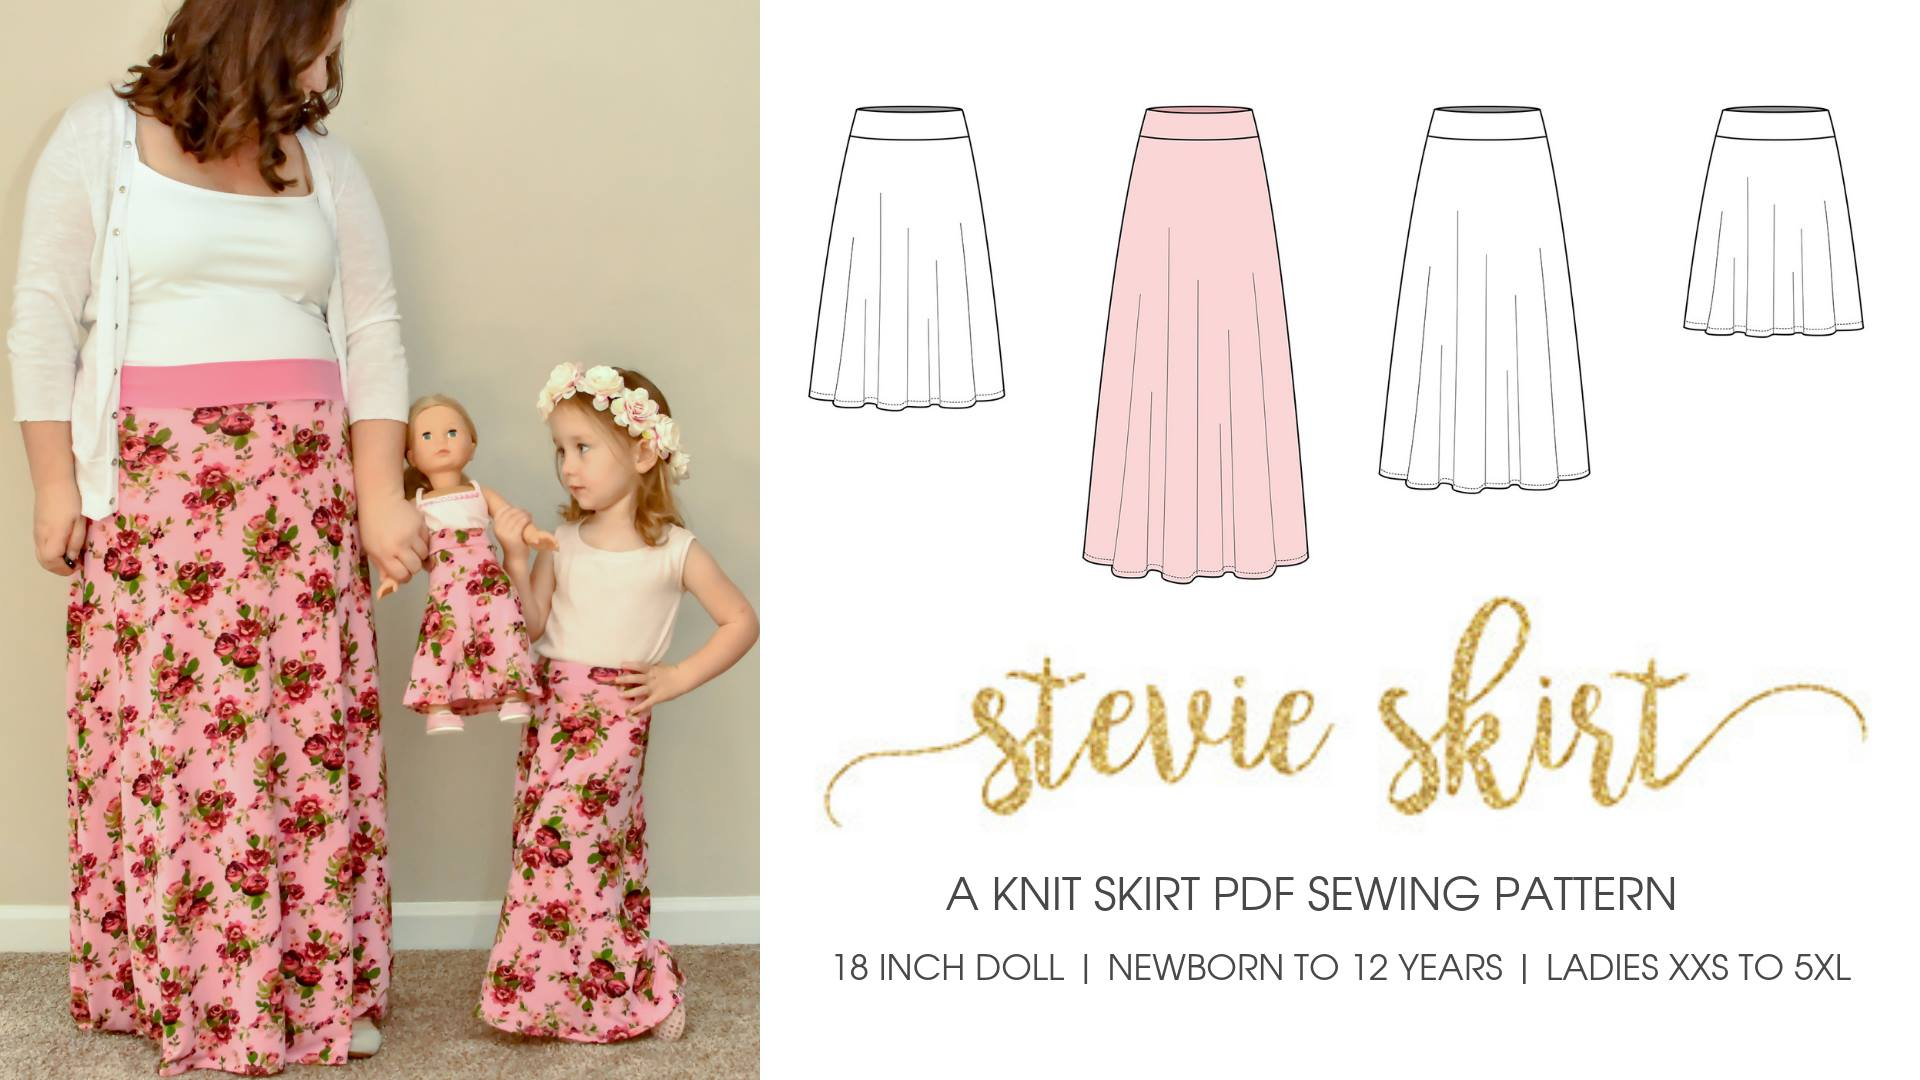 Stevie Skirt Sewing Pattern Sale for Women Girls and Dolls